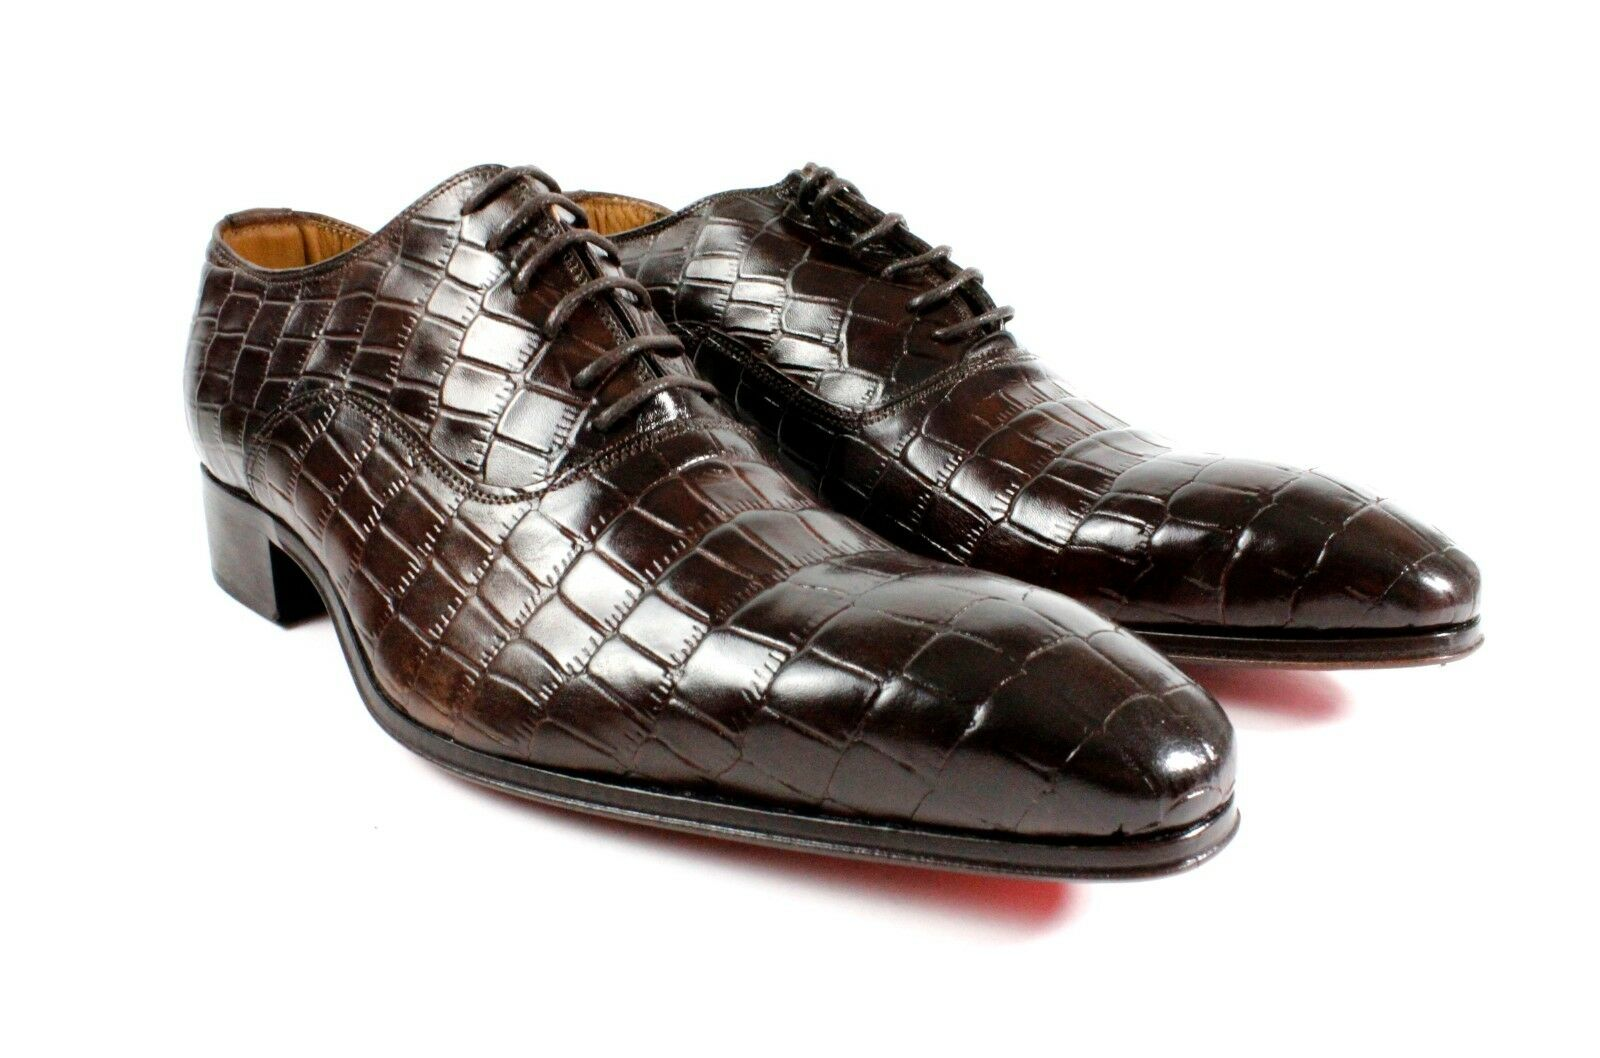 IVAN TROY Brown Crocodile  Handmade Men Italian Leather Dress shoes Oxford shoes